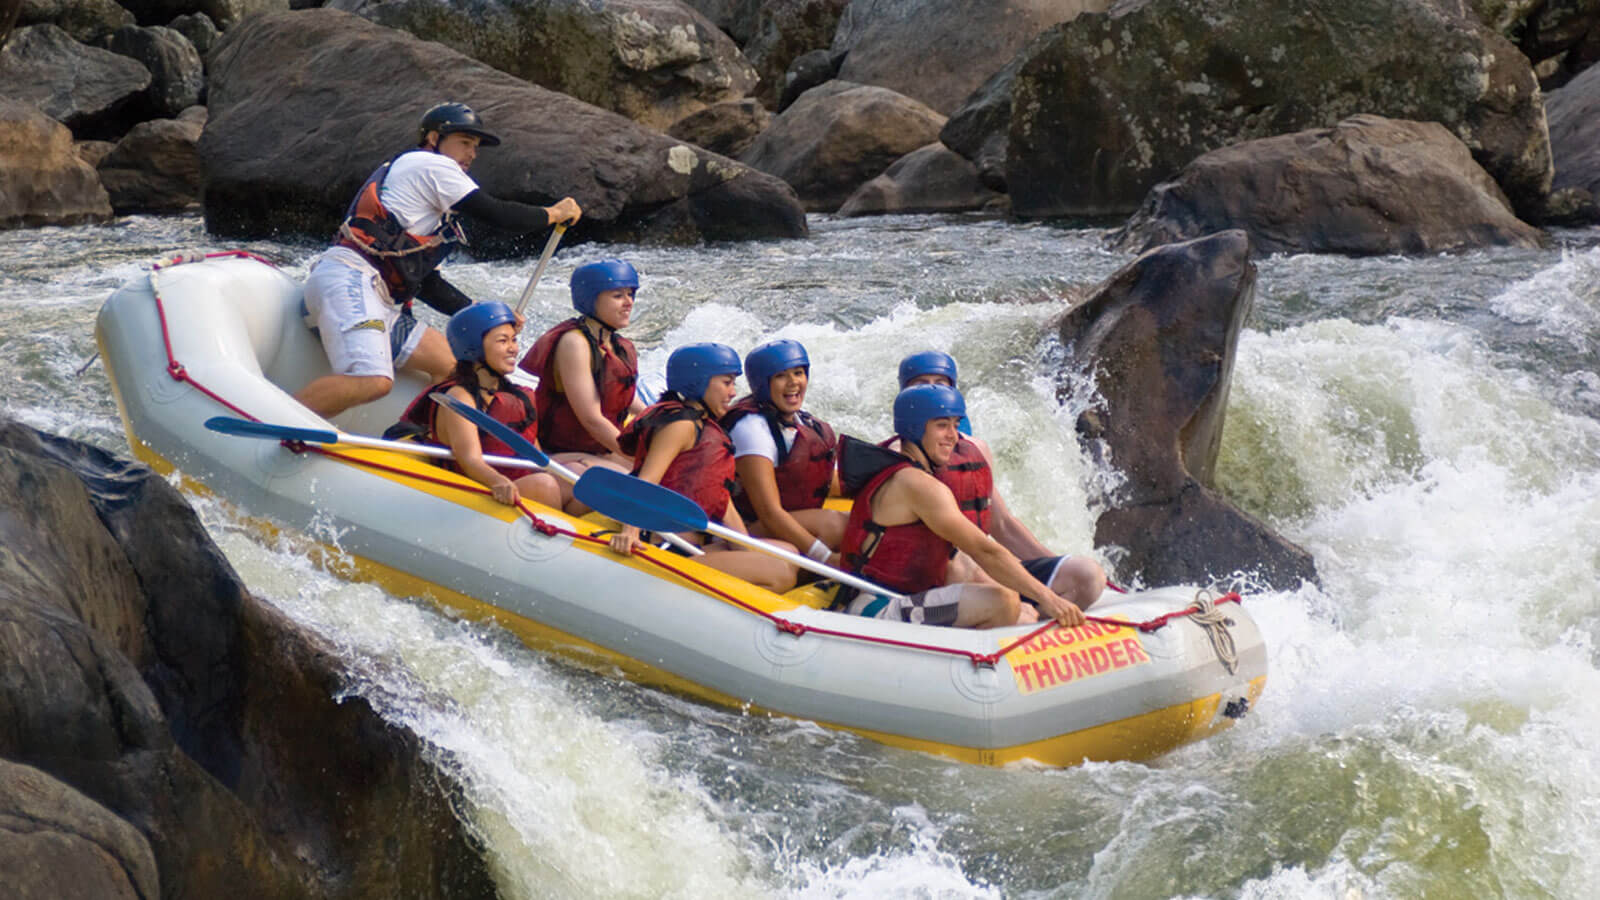 Raft going over the rapids